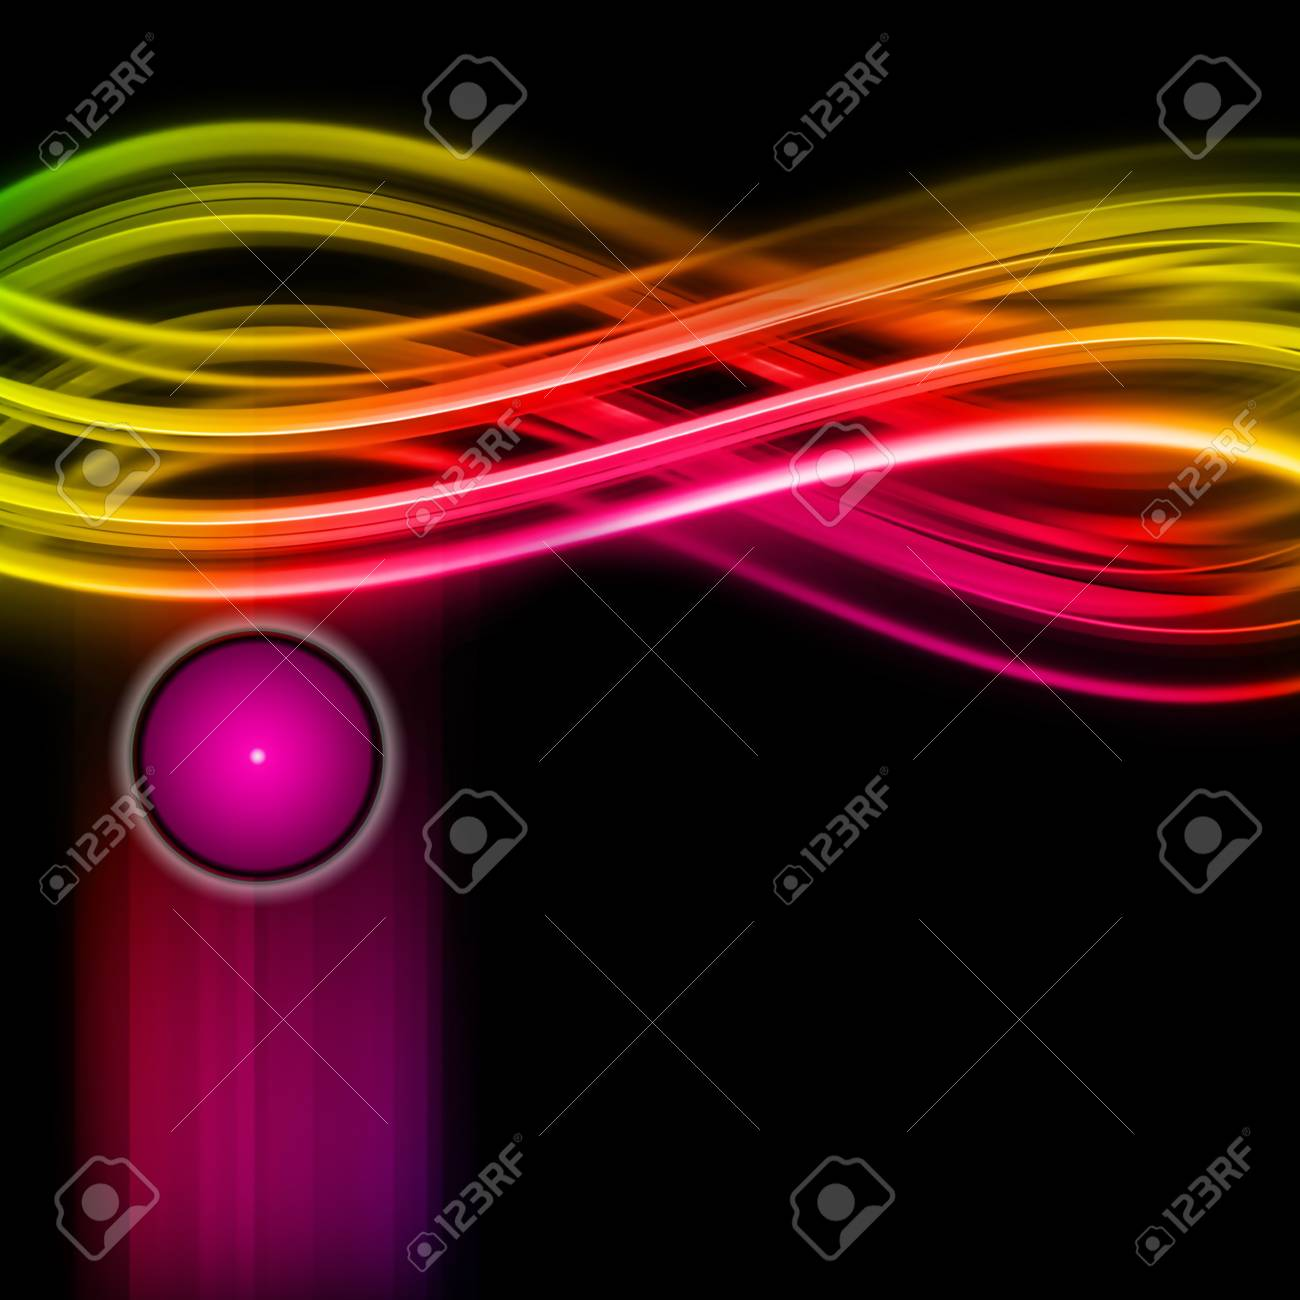 Abstract elegant background design with space for your text Stock Photo - 15024474